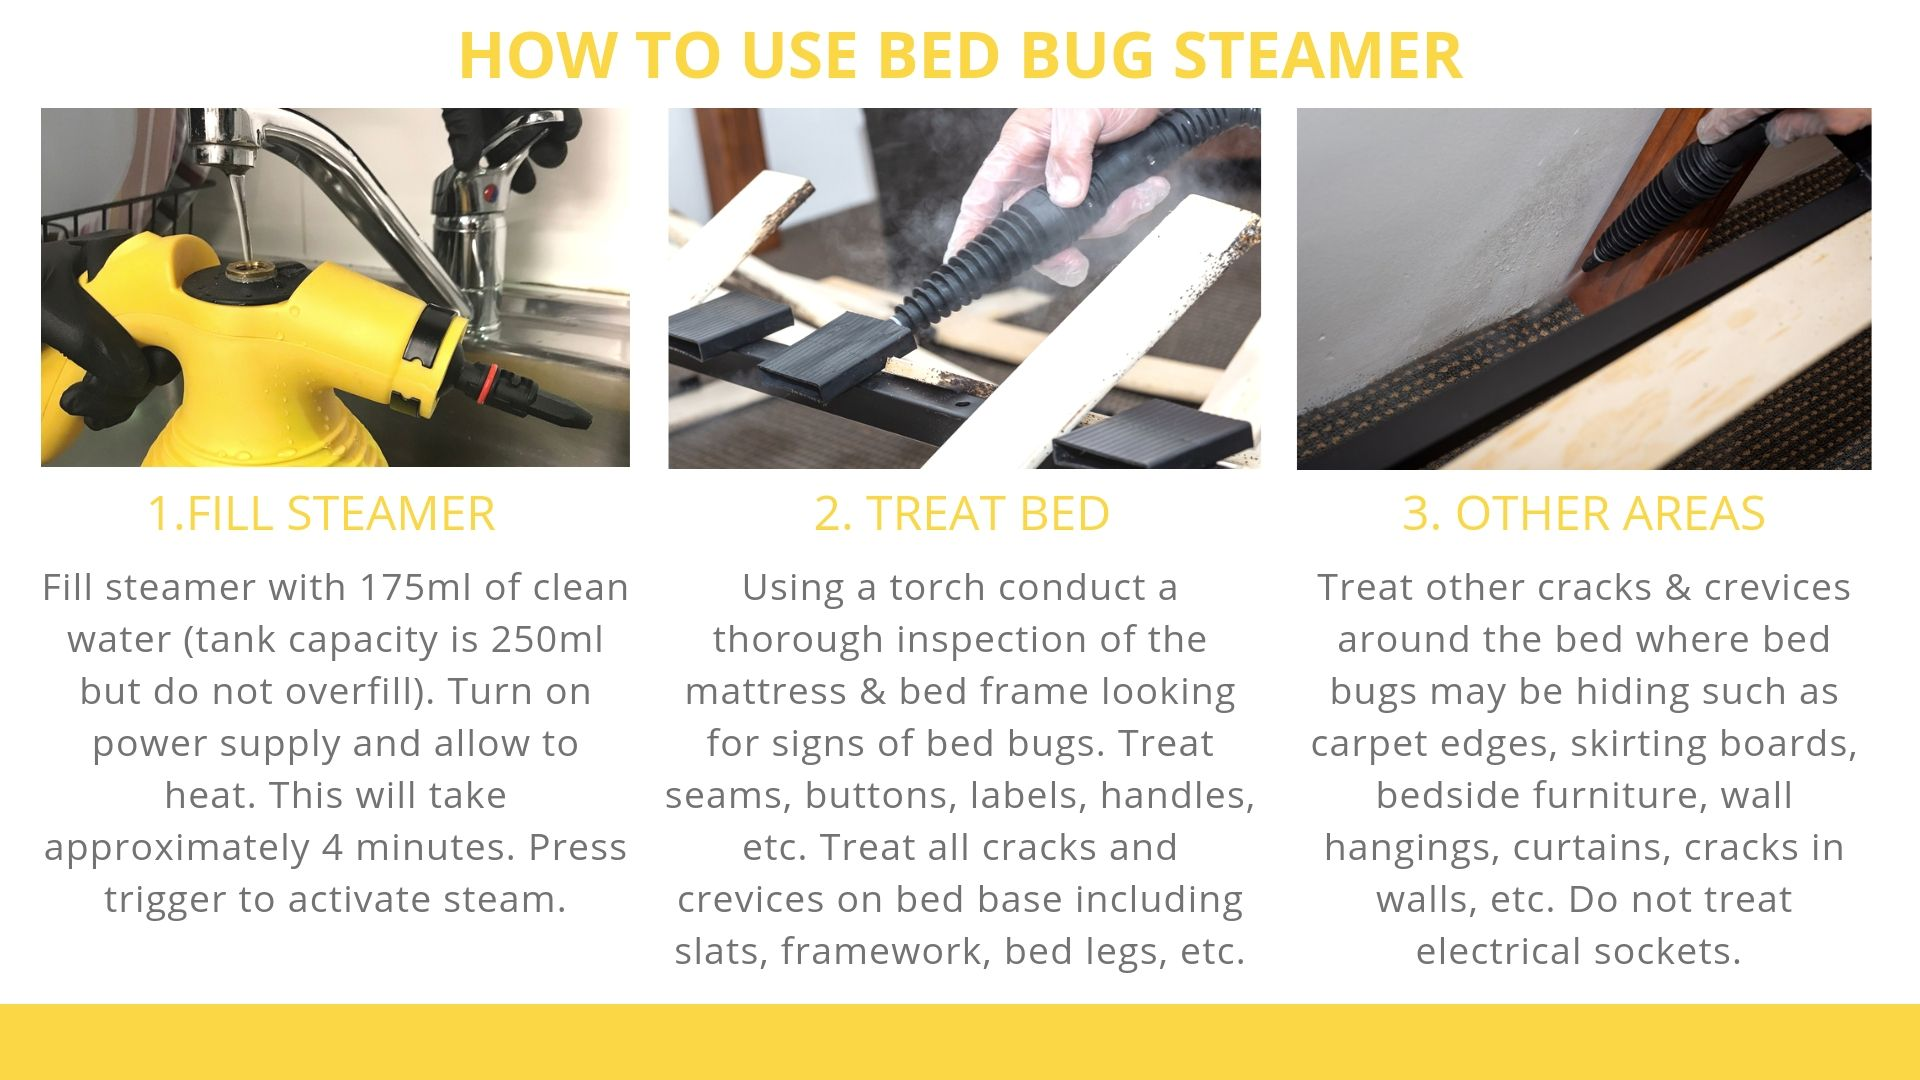 How to use Bed Bug Steamer